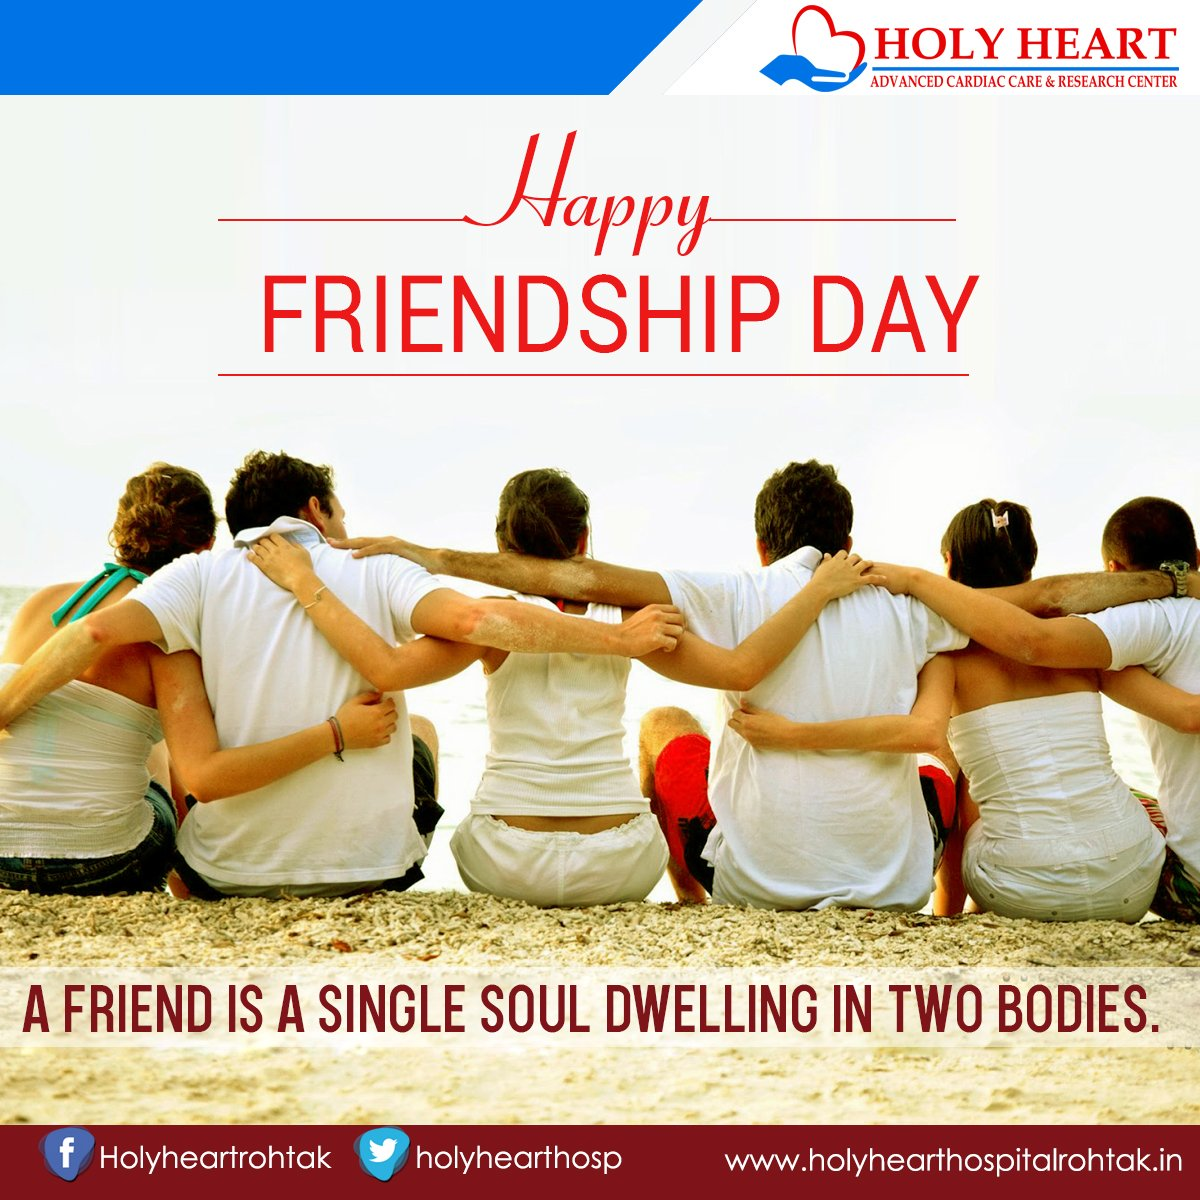 Holy Heart Hospital On Twitter Best Friend Are The One Who Brings Out The Best In You This Friendship Day Spend Your Time With Your Buddies Friendshipday Bestfriend Friends Familyforlife Truefriends Https T Co Yh9zagfgo3